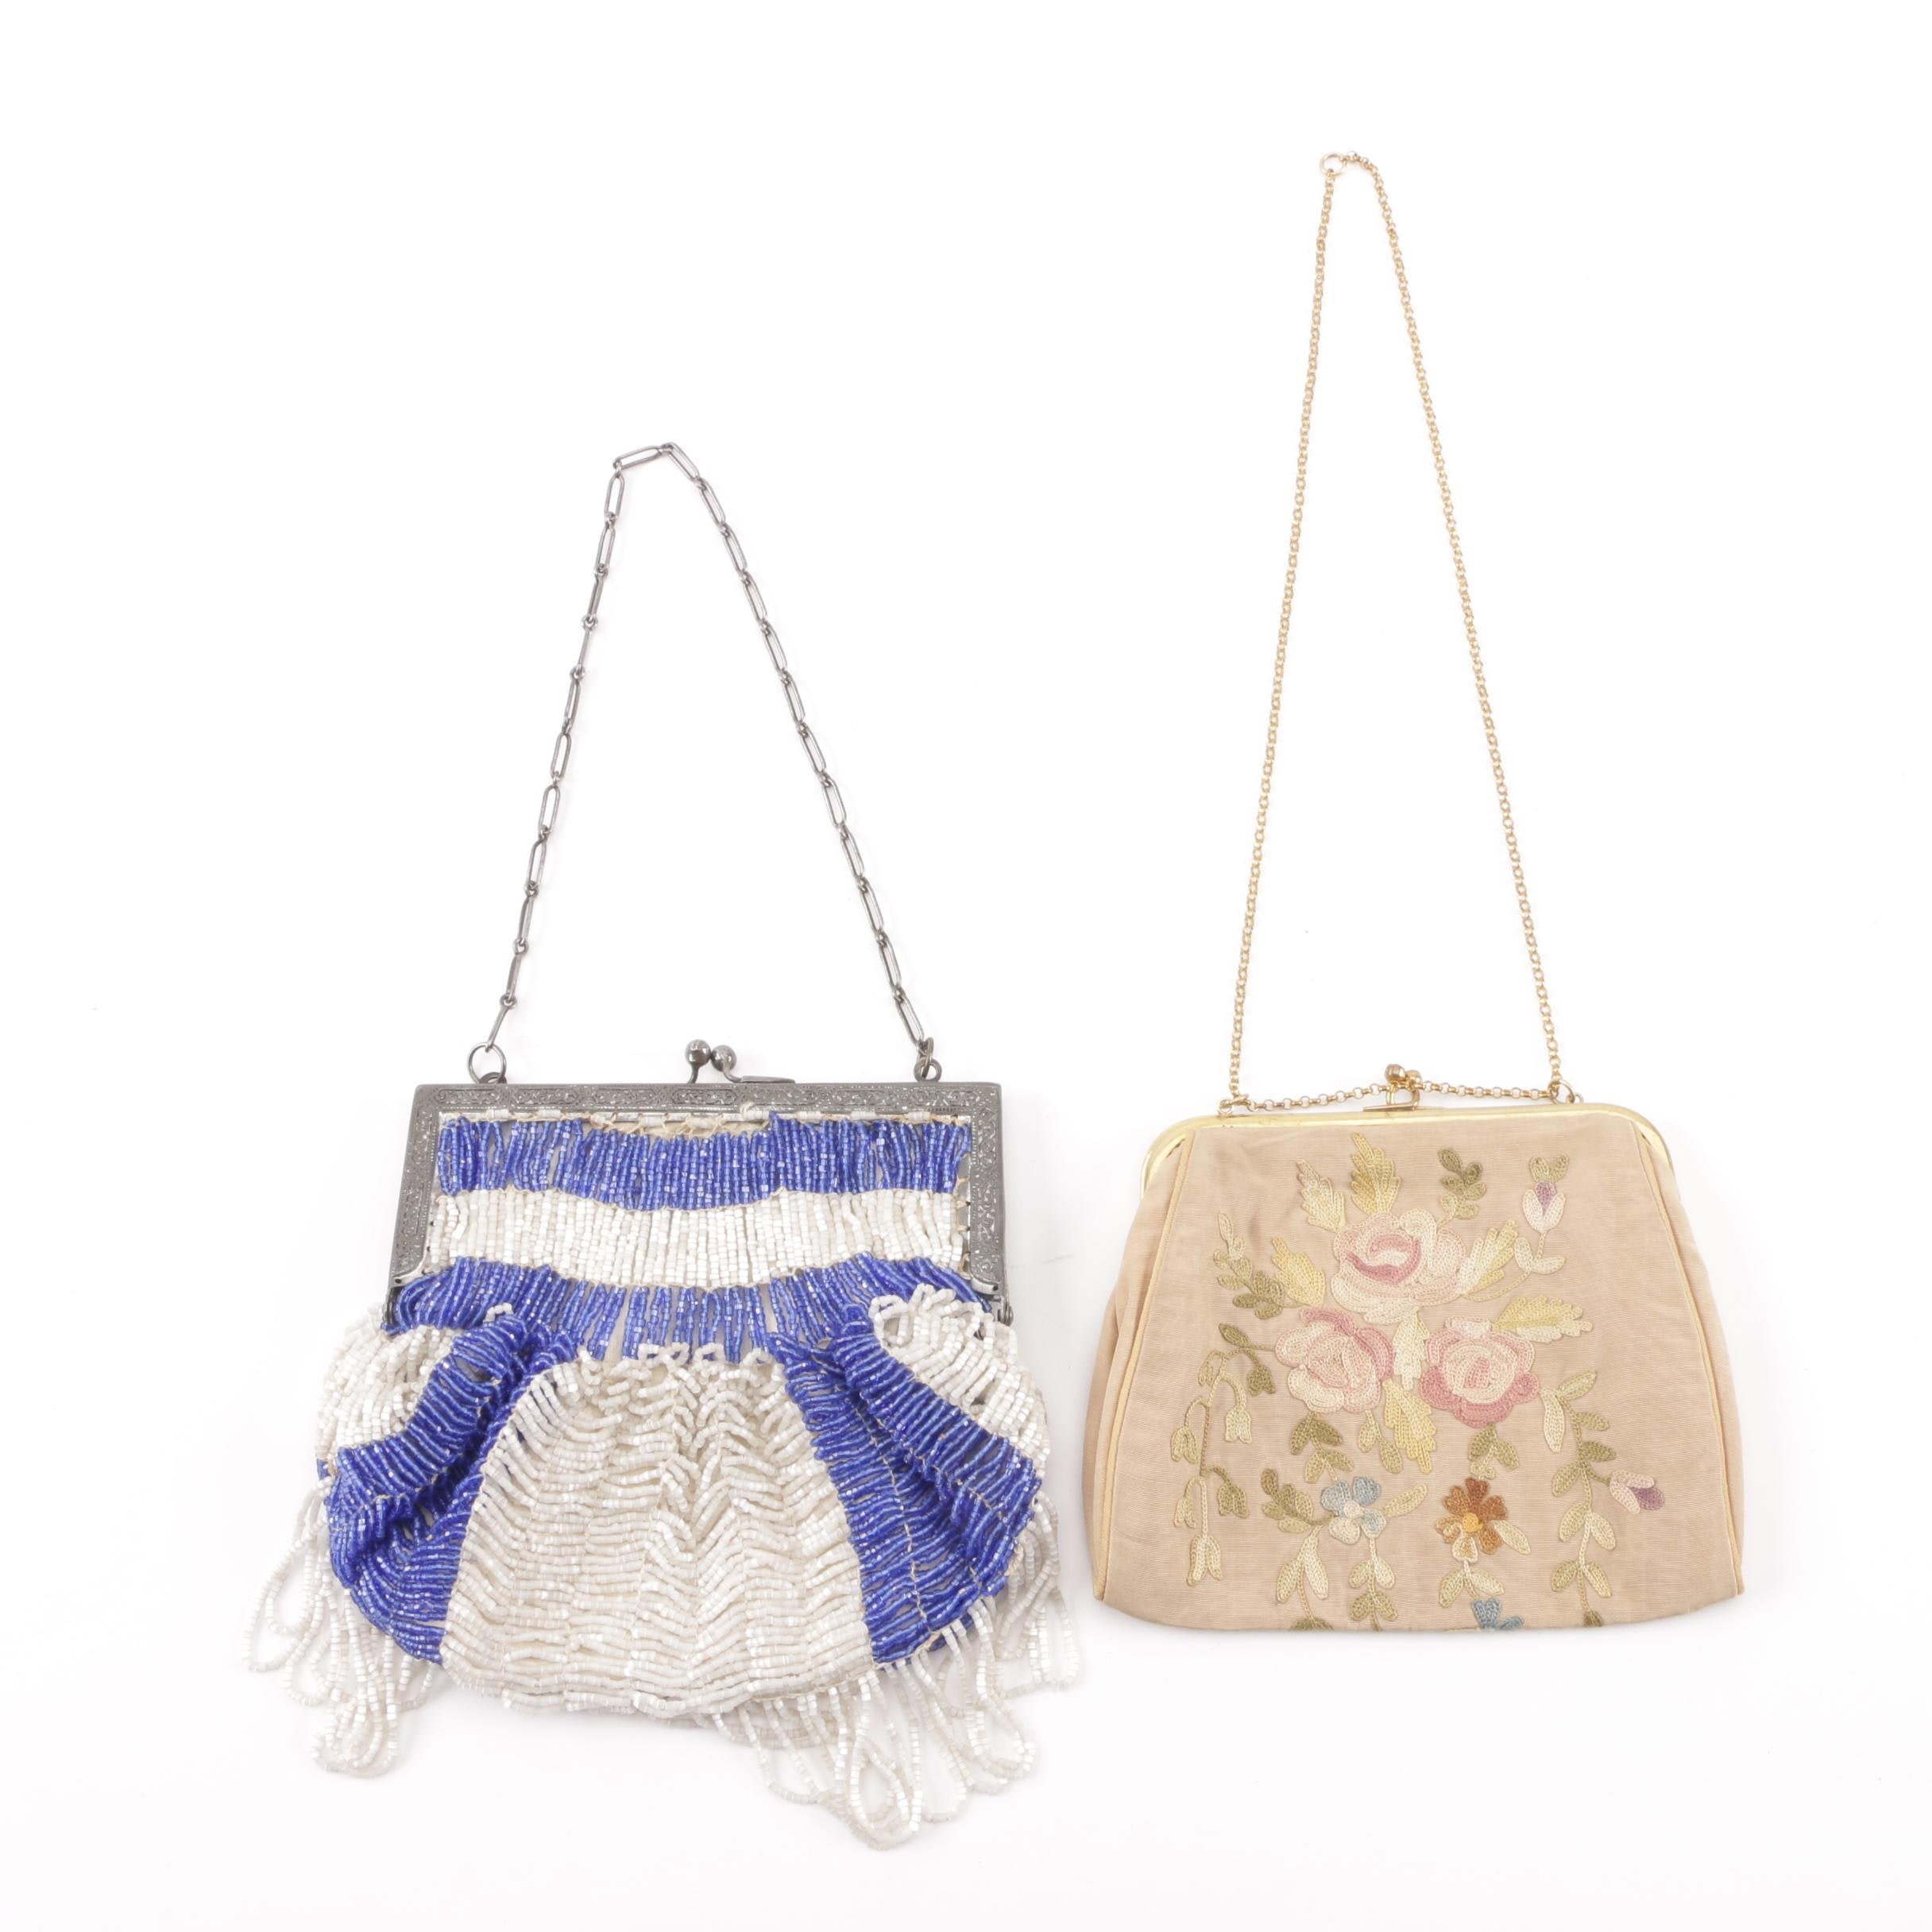 Early 20th Century Beaded and Floral Chain Stitch Handmade Handbags